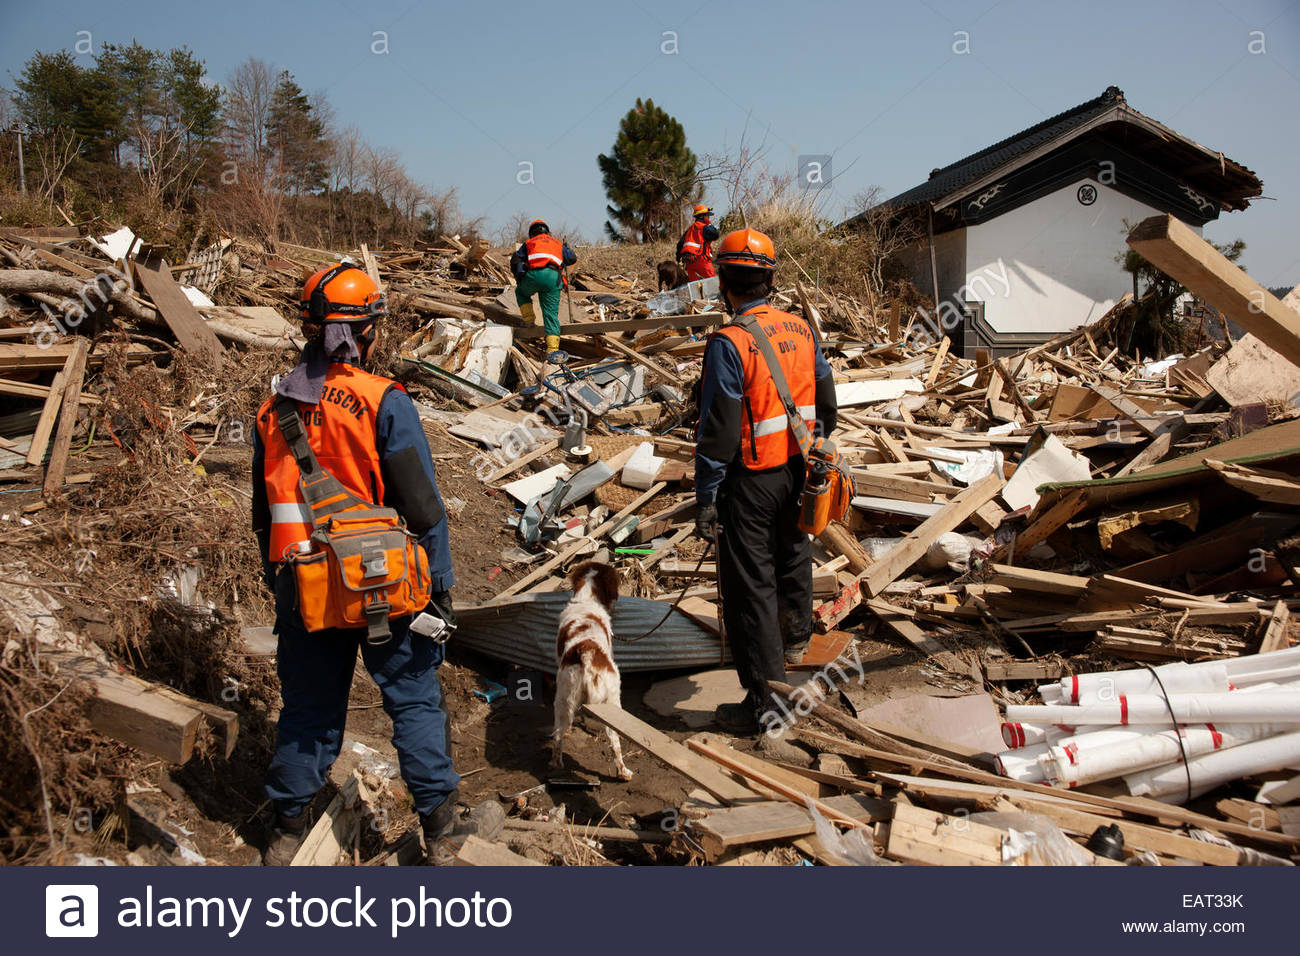 A dog search and rescue team looks for bodies in the tsunami wreckage. - Stock Image